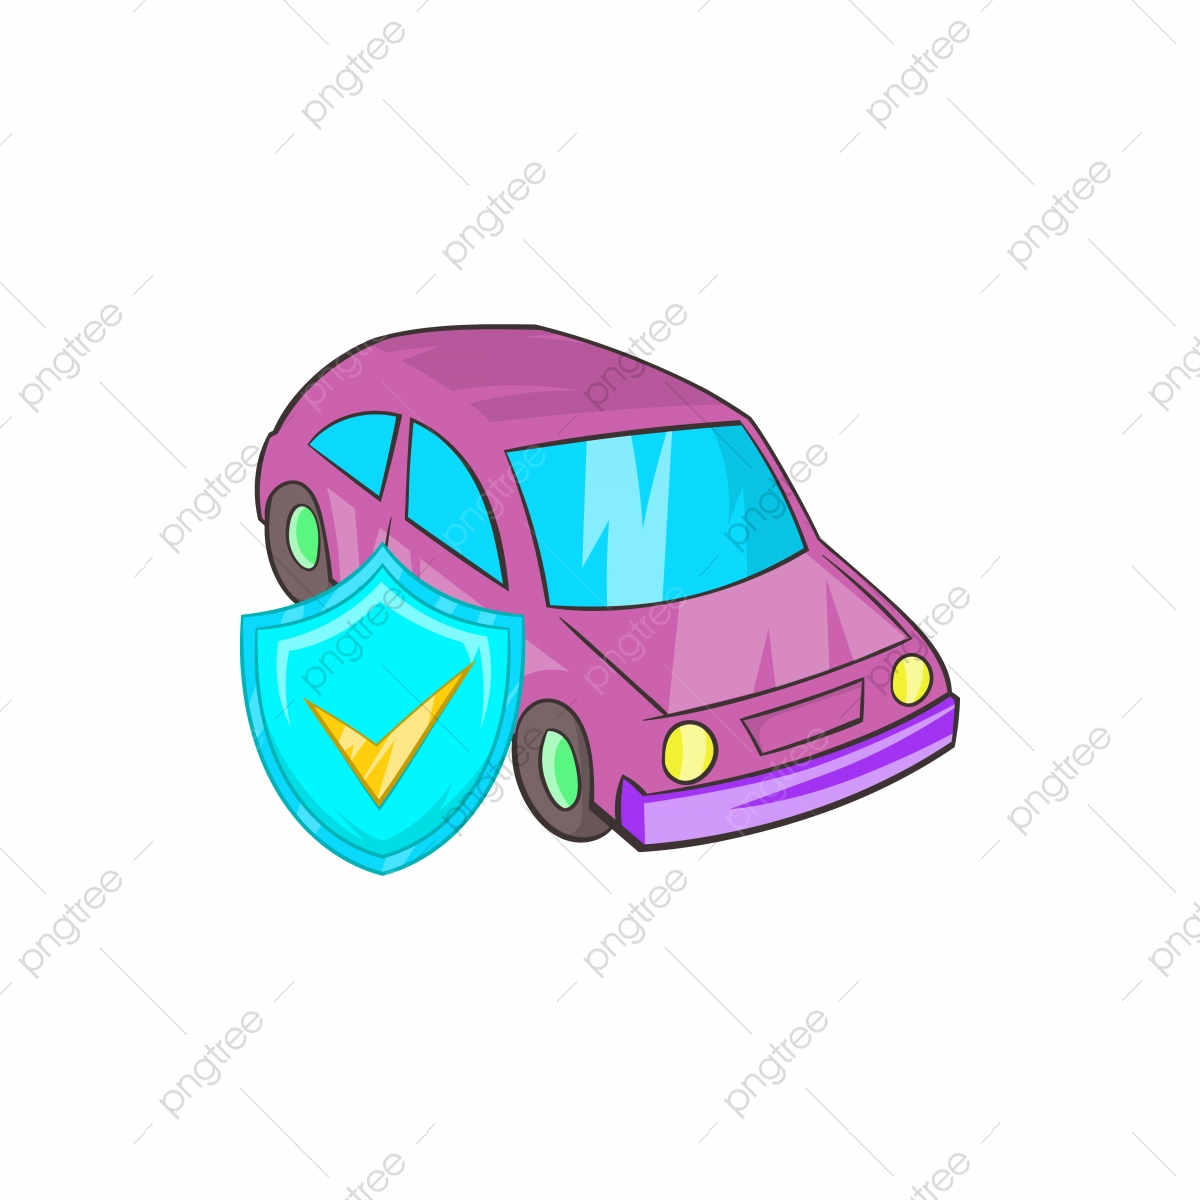 Car Insurance Icon In Cartoon Style Car Icons Style Icons Cartoon Icons Png And Vector With Transparent Background For Free Download